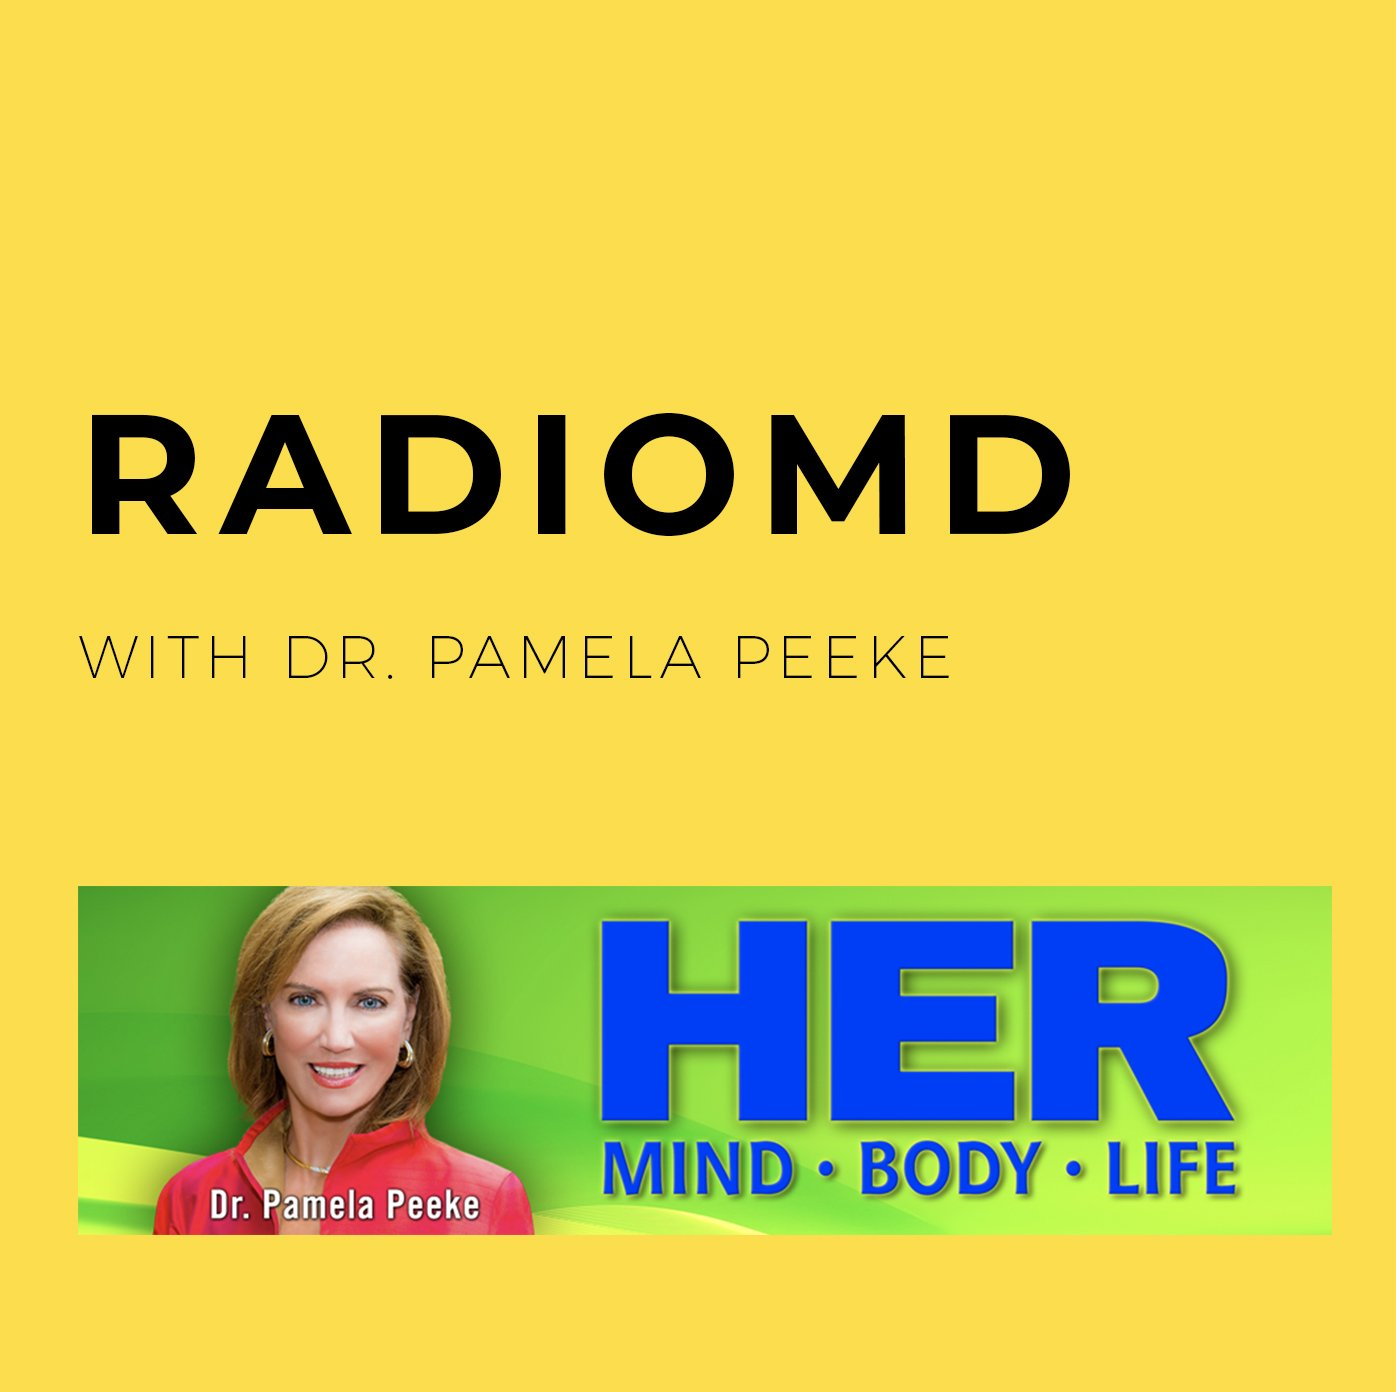 Overcome Your Food Demons with Intensive Mindfulness- Interview on RadioMD with Dr. Pamela Peeke